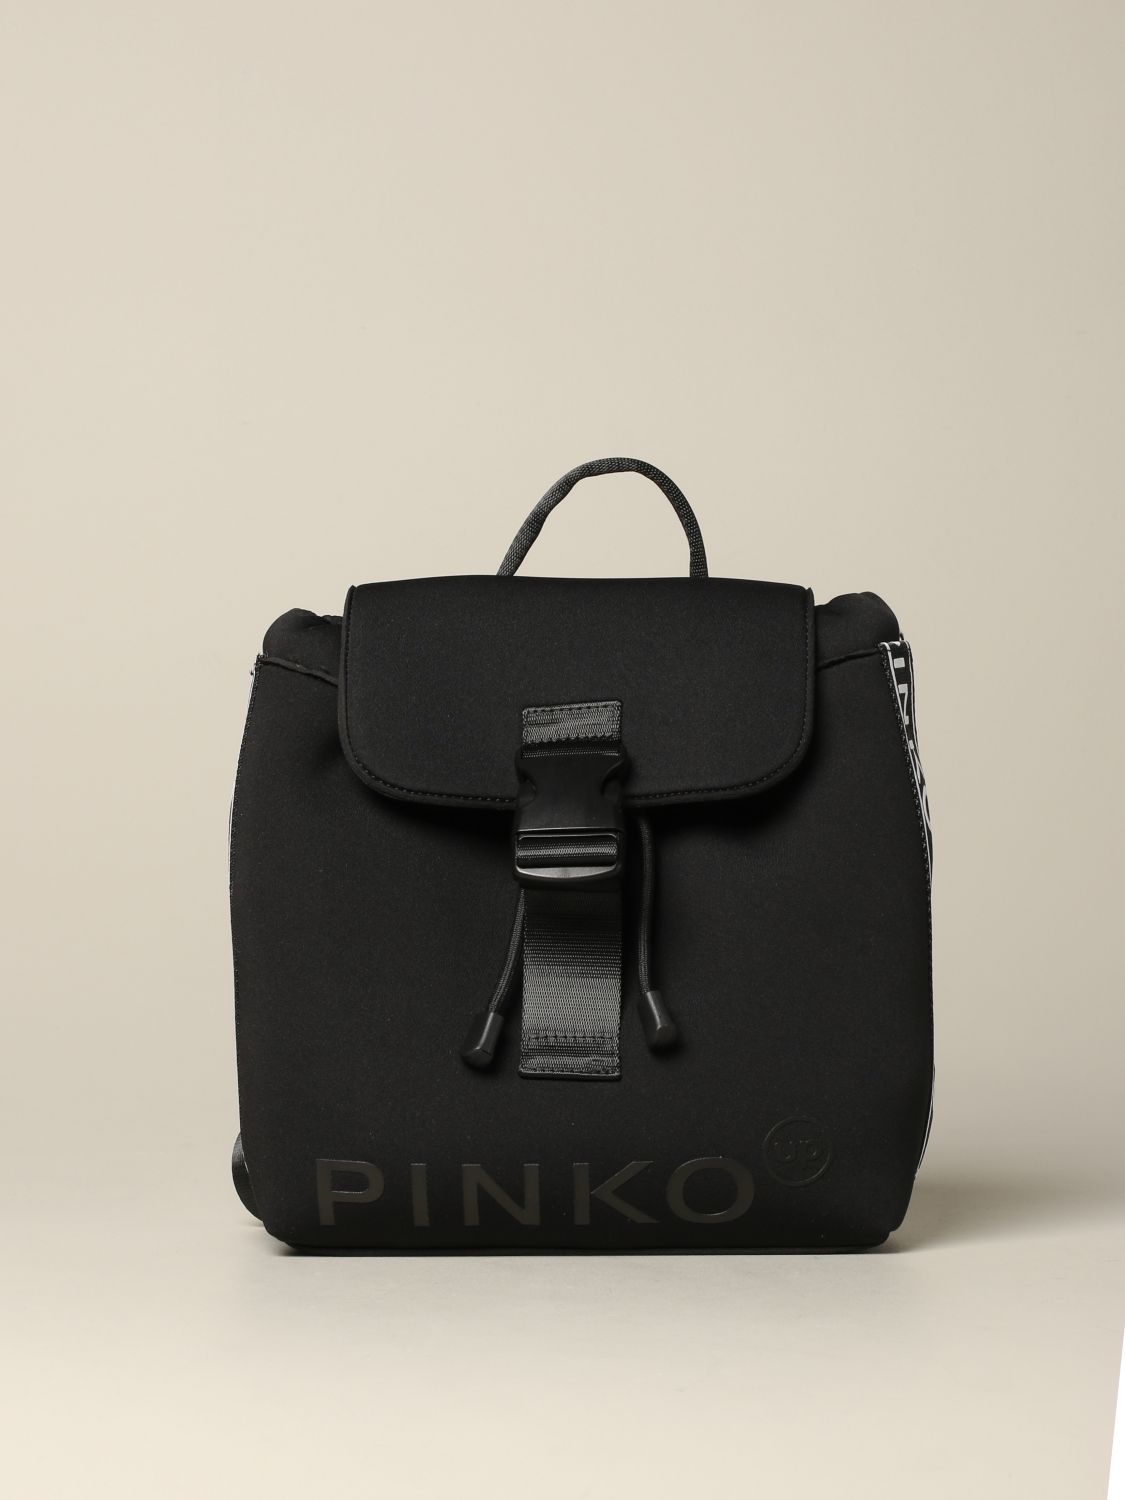 Duffel bag kids Pinko black 1